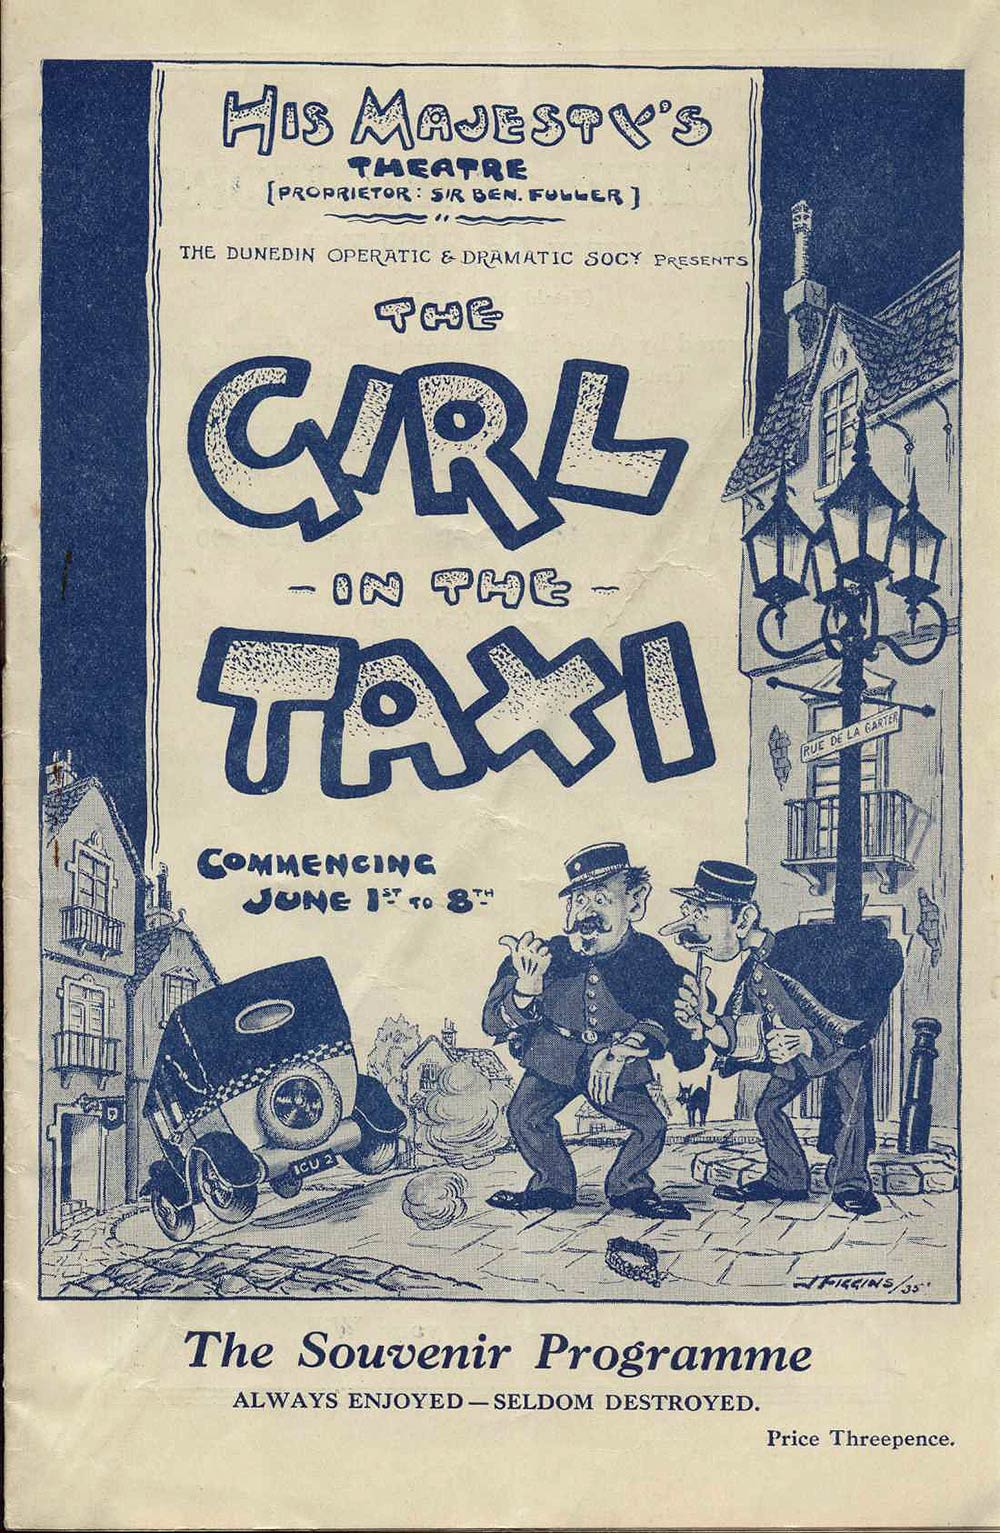 <em>The girl in the taxi</em>. Music by Jean Gilbert. (Dunedin Operatic & Dramatic Society). His Majesty's Theatre, Dunedin, June 1-8, 1935.